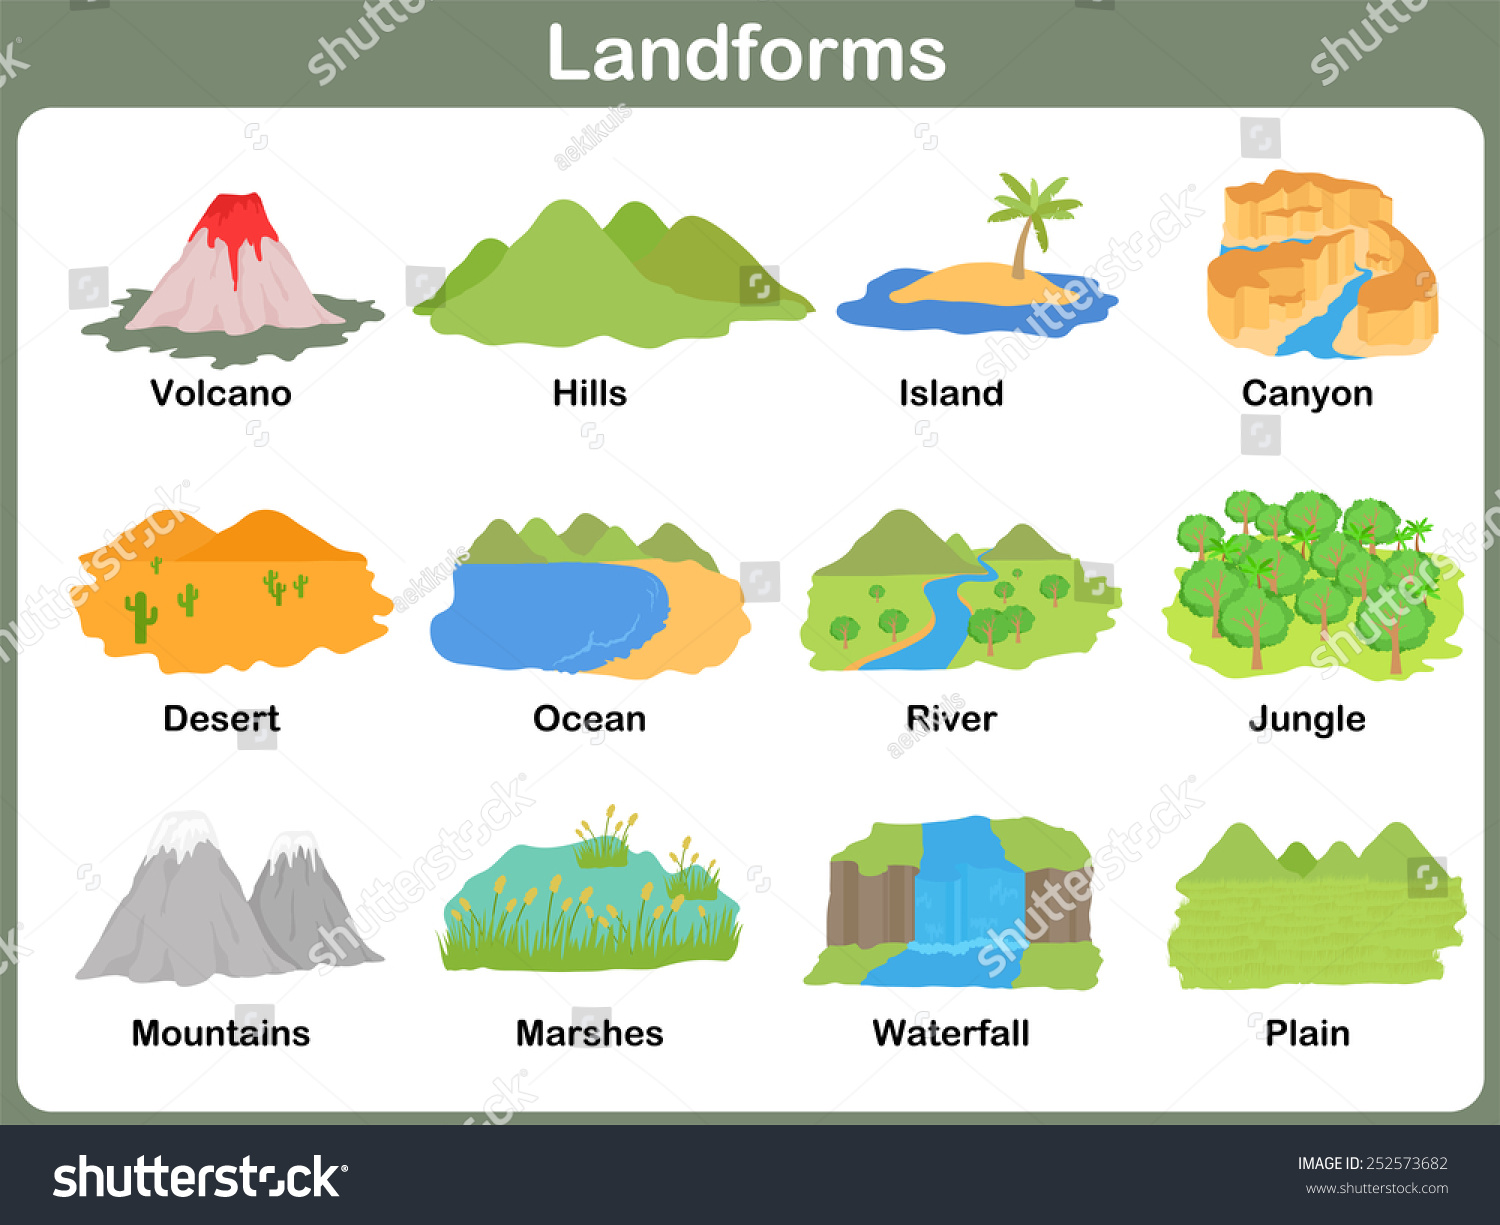 Printables Worksheets On Landforms leaning landforms for kids worksheet stock vector illustration save to a lightbox